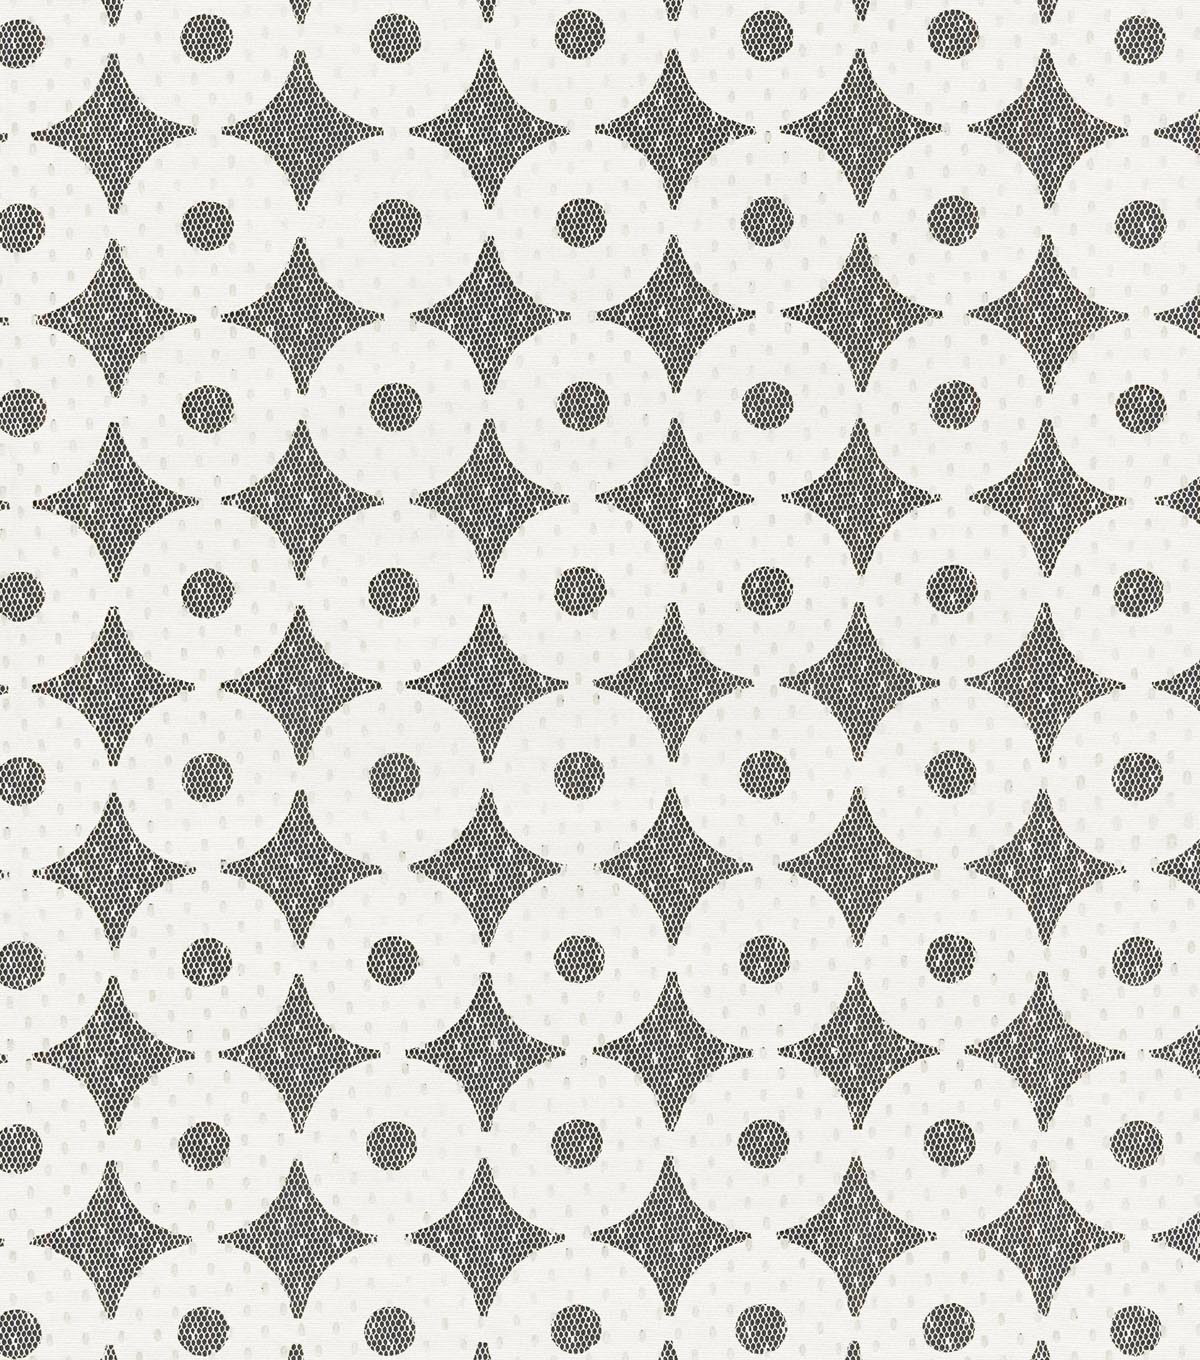 Home Decor 8\u0022x8\u0022 Swatch Fabric-IMAN Home Sayan Circles Alabaster